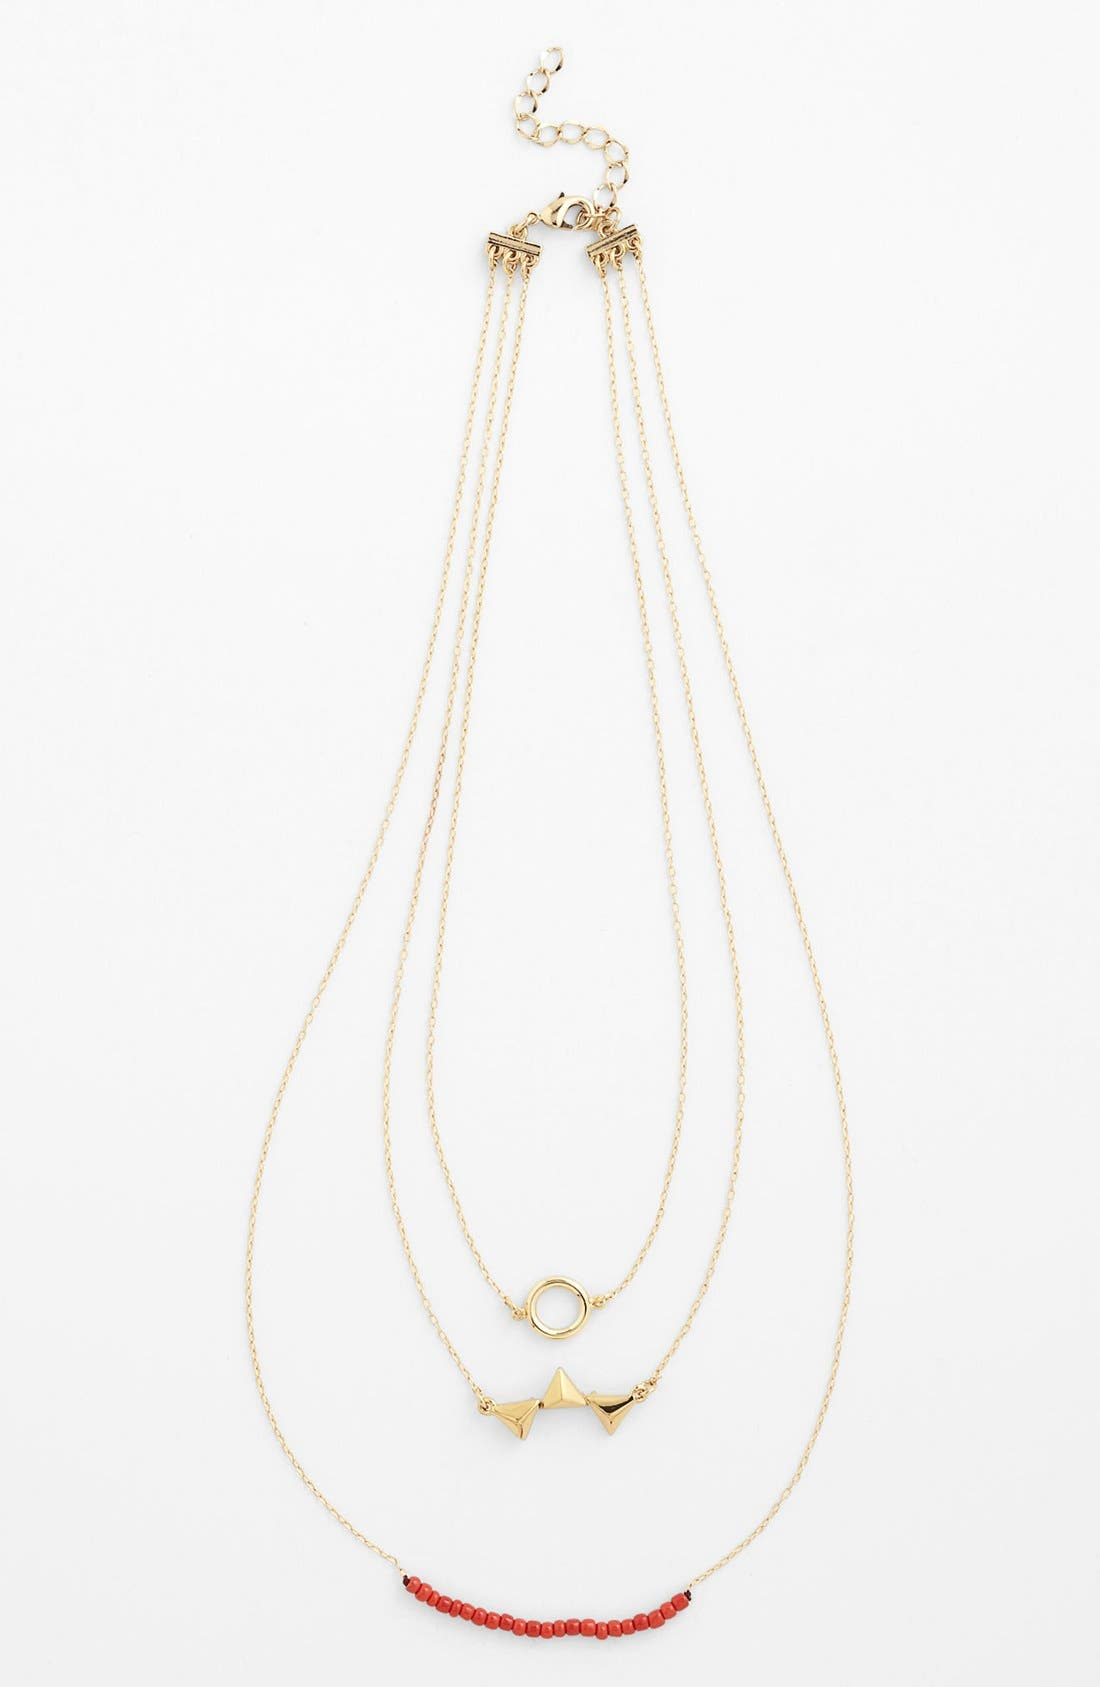 Alternate Image 1 Selected - Carbon Copy Multistrand Necklace